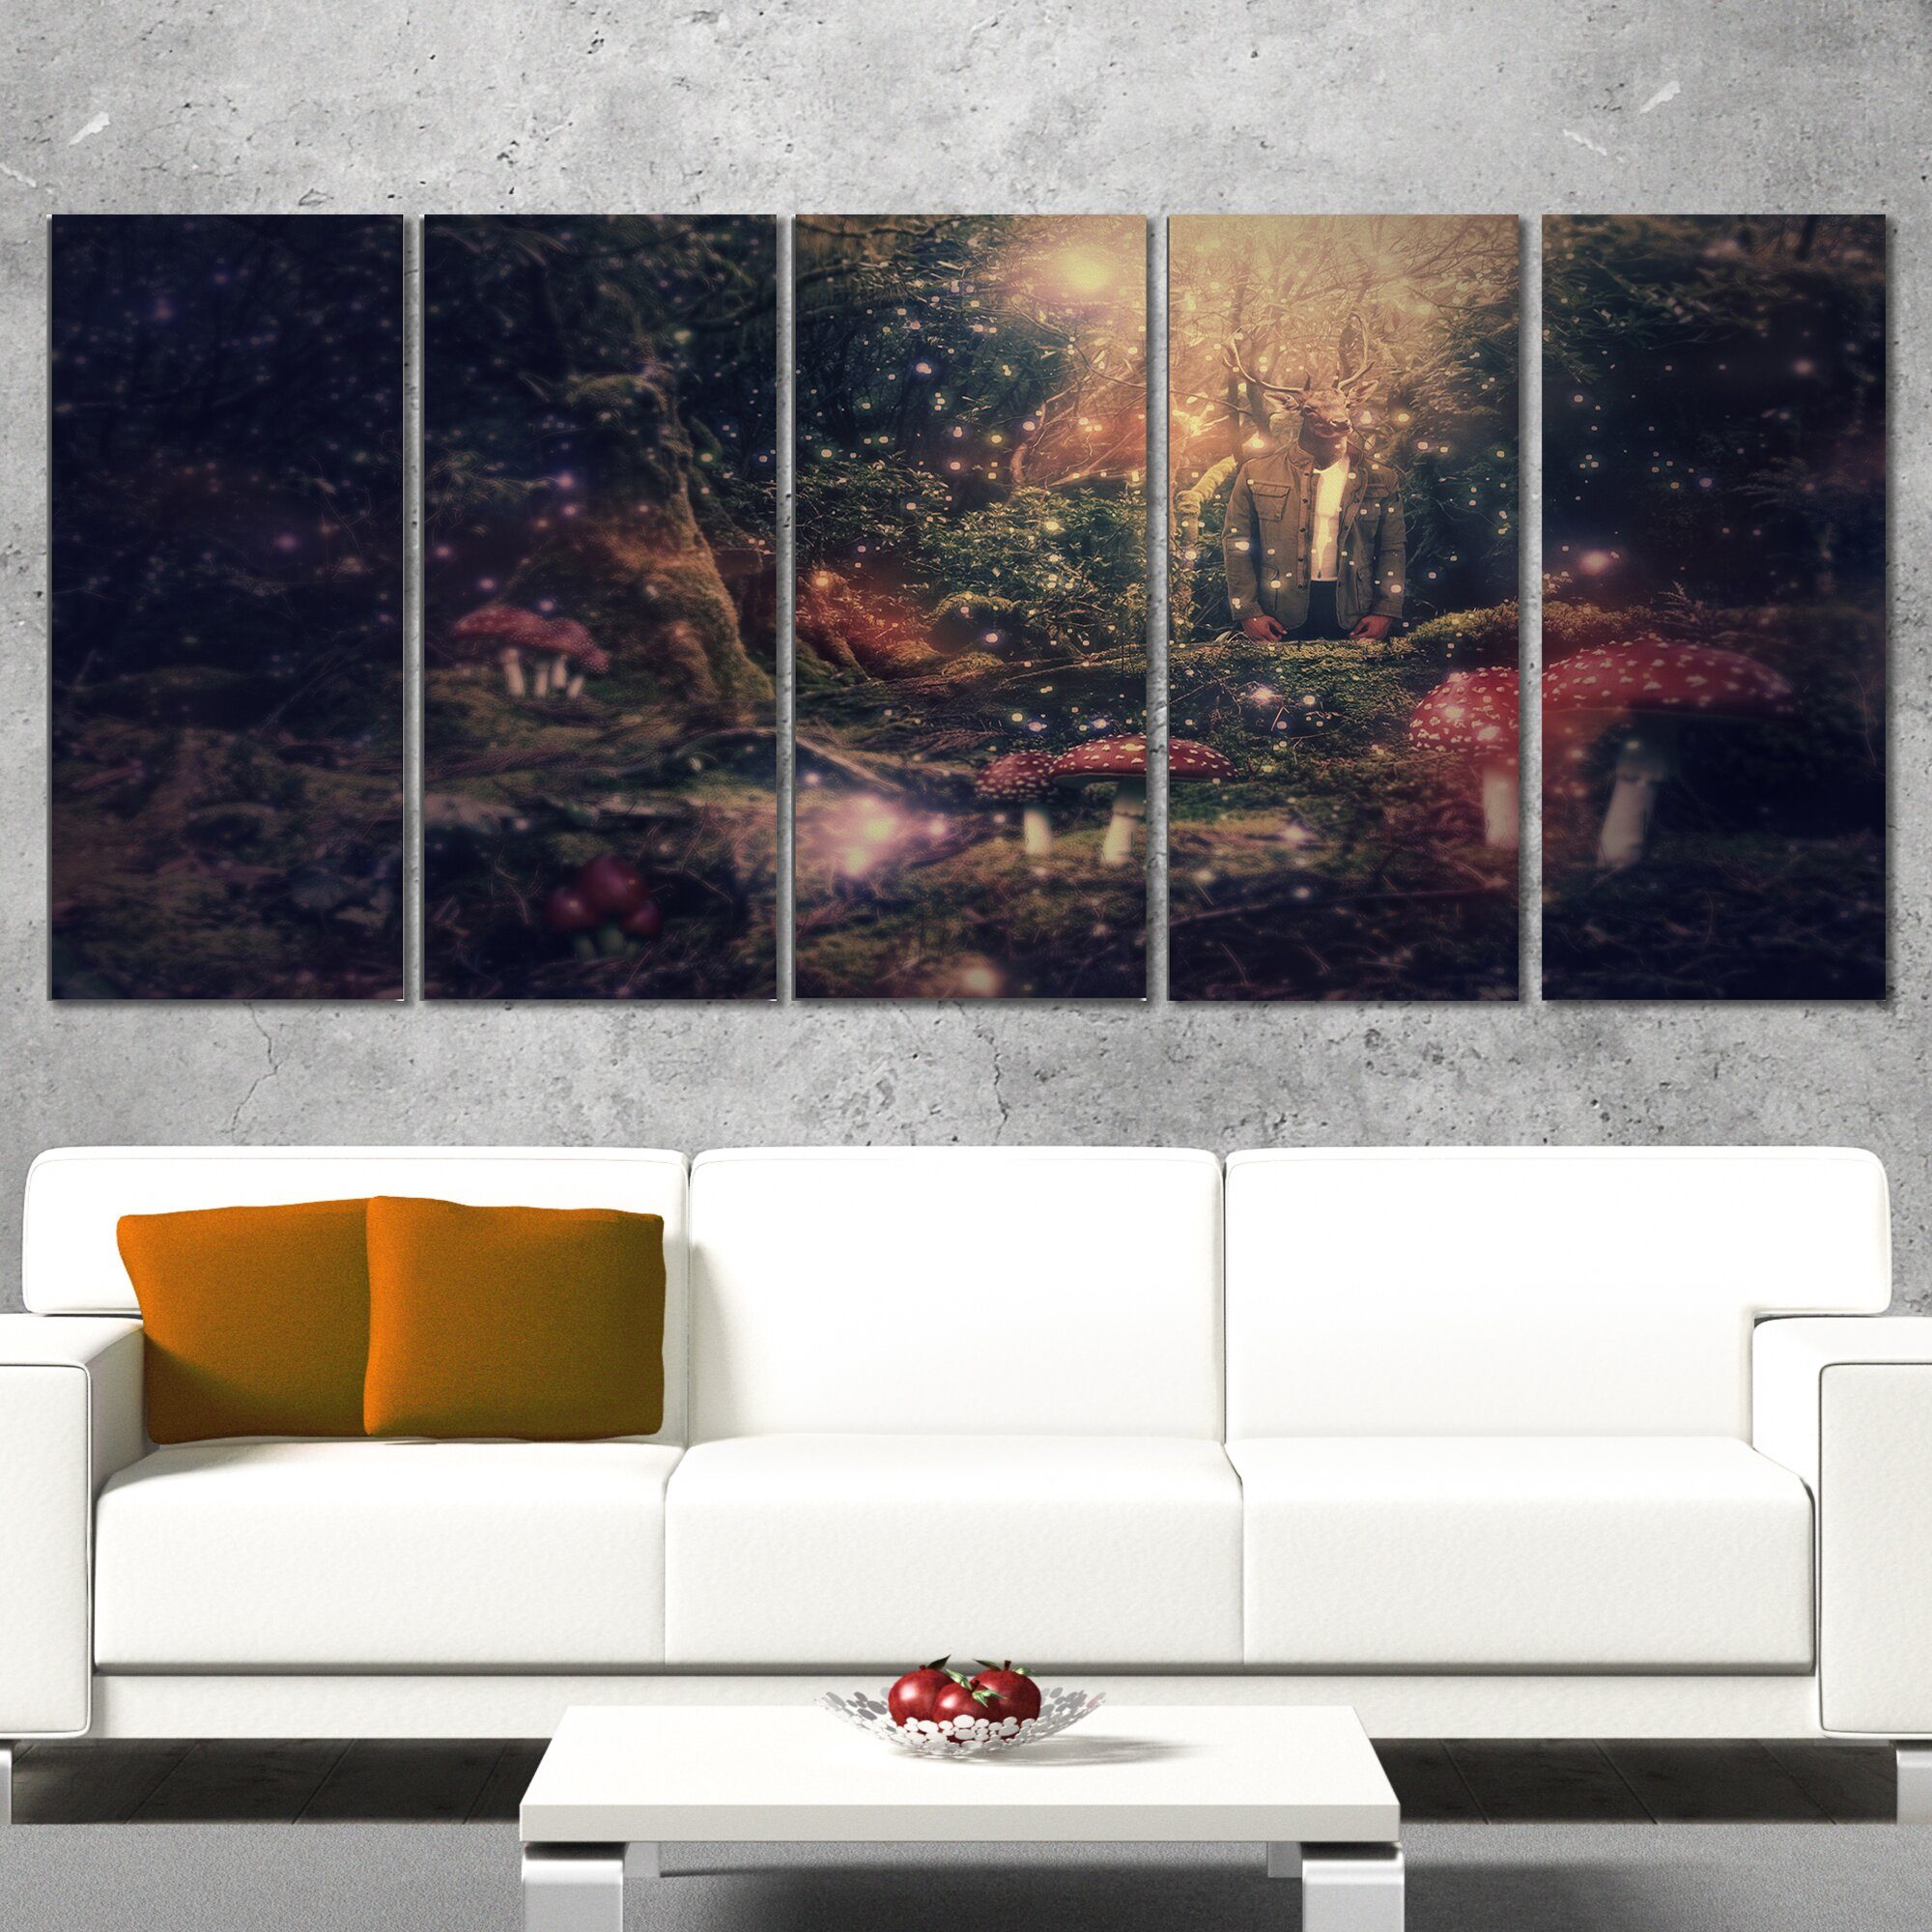 DesignArt Abstract Collage Art 5 Piece Wall Art On Wrapped